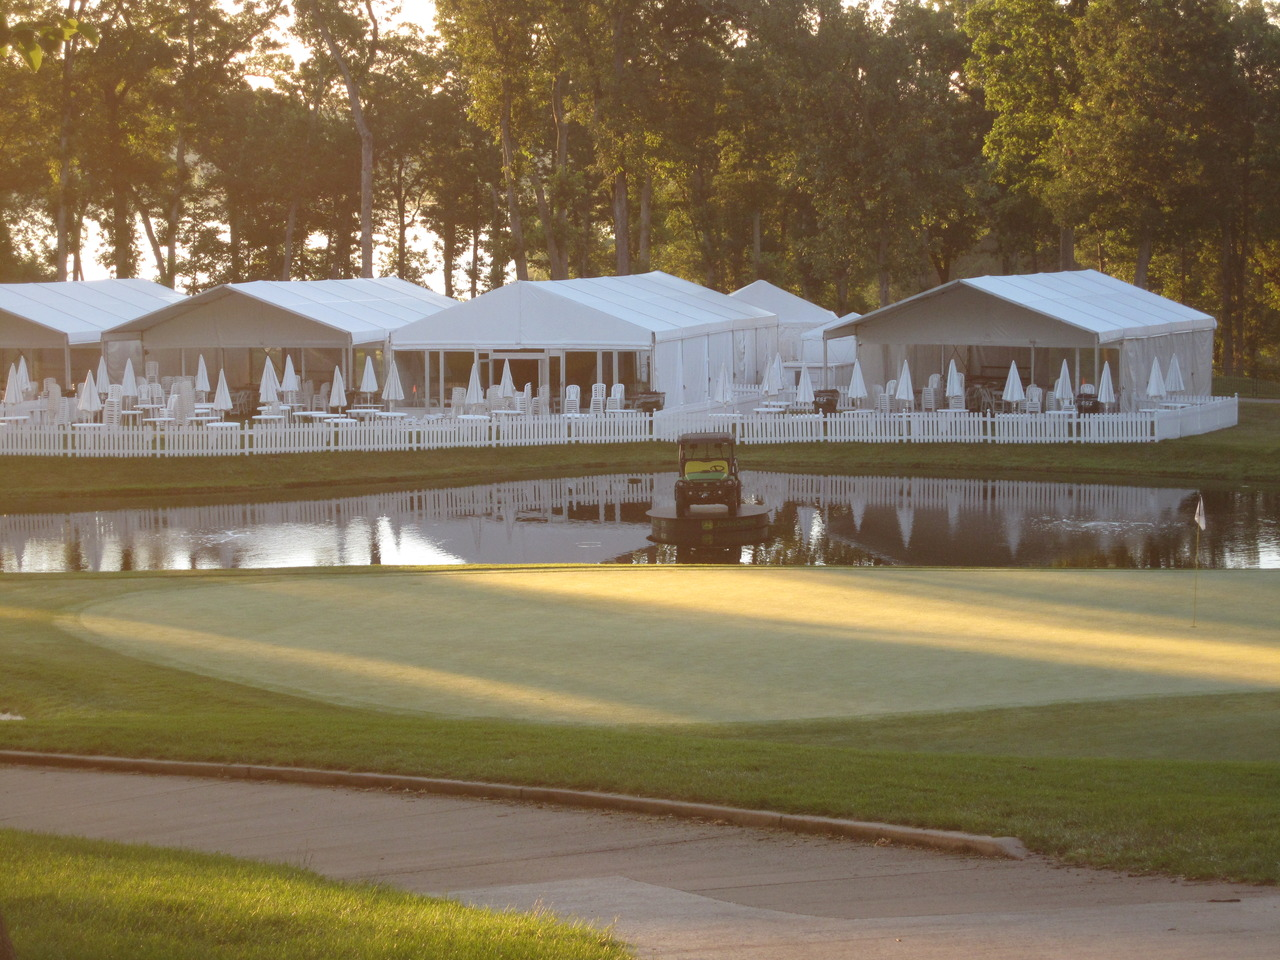 My brother is getting ready to work a PGA tournament tomorrow, the  John Deere Classic  at the beautiful Deere Run course in Illinois. I'm so proud, I wish I could be there. You can watch it live this week on the golf channel and on CBS Saturday and Sunday.   (via  fordf250 )